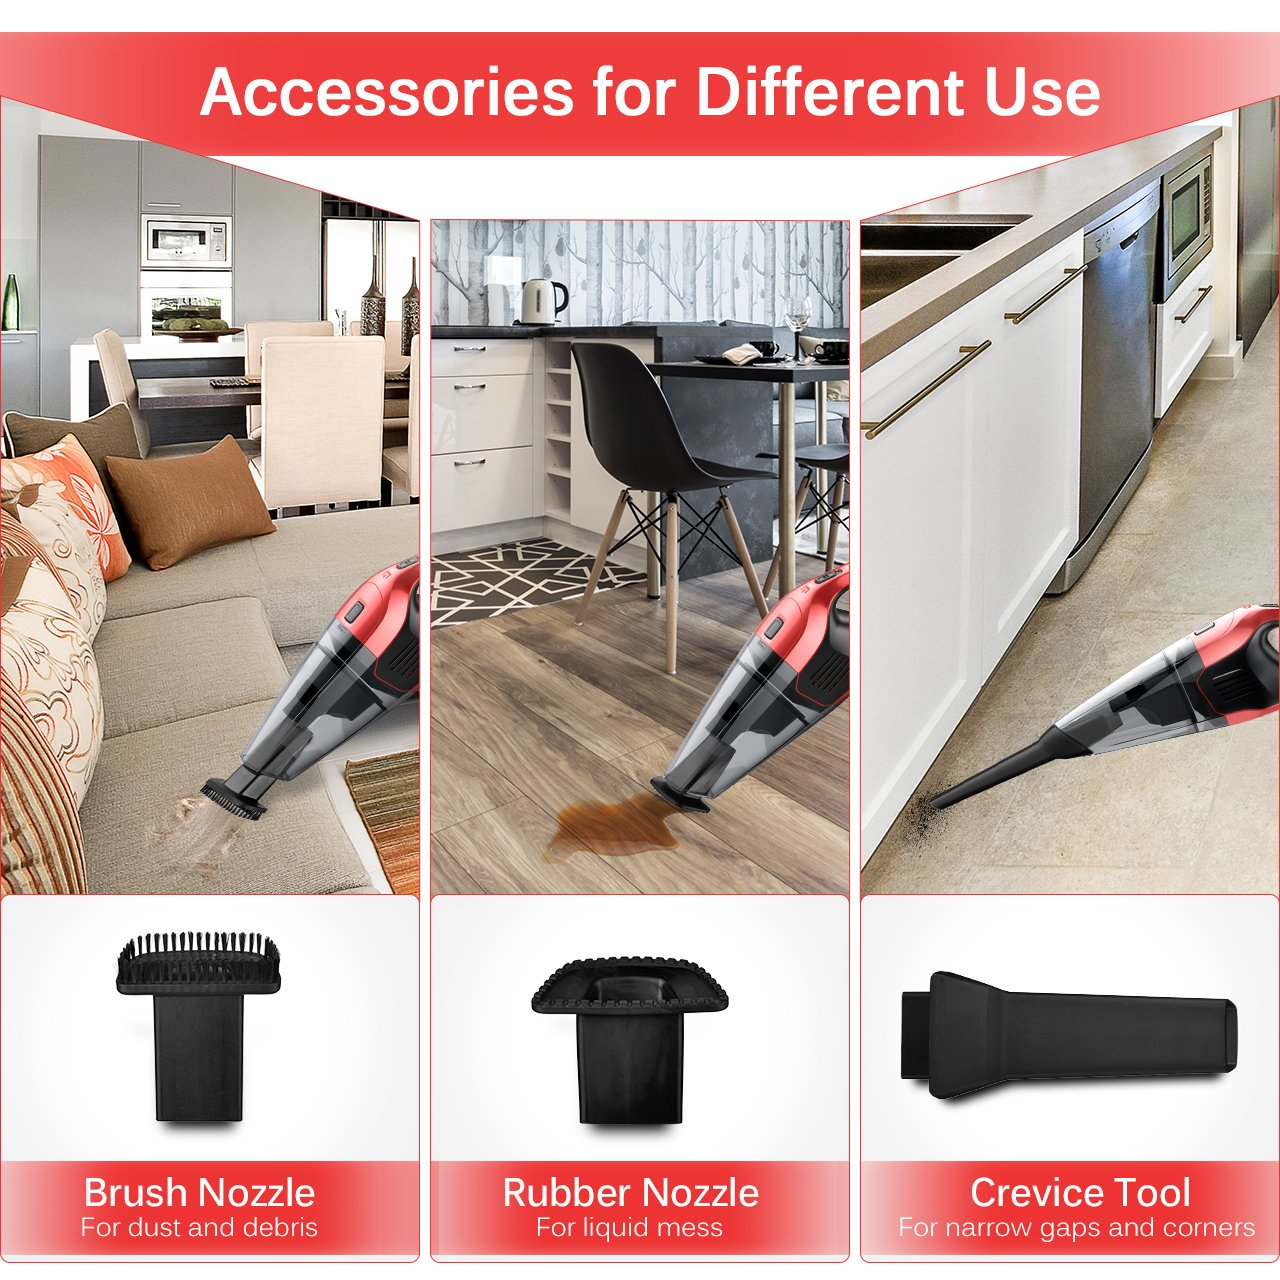 HoLife Handheld Vacuum 14.8V Hand Cordless Portable Pet Hair Home and Car Cleaning, min, Red by HoLife (Image #3)